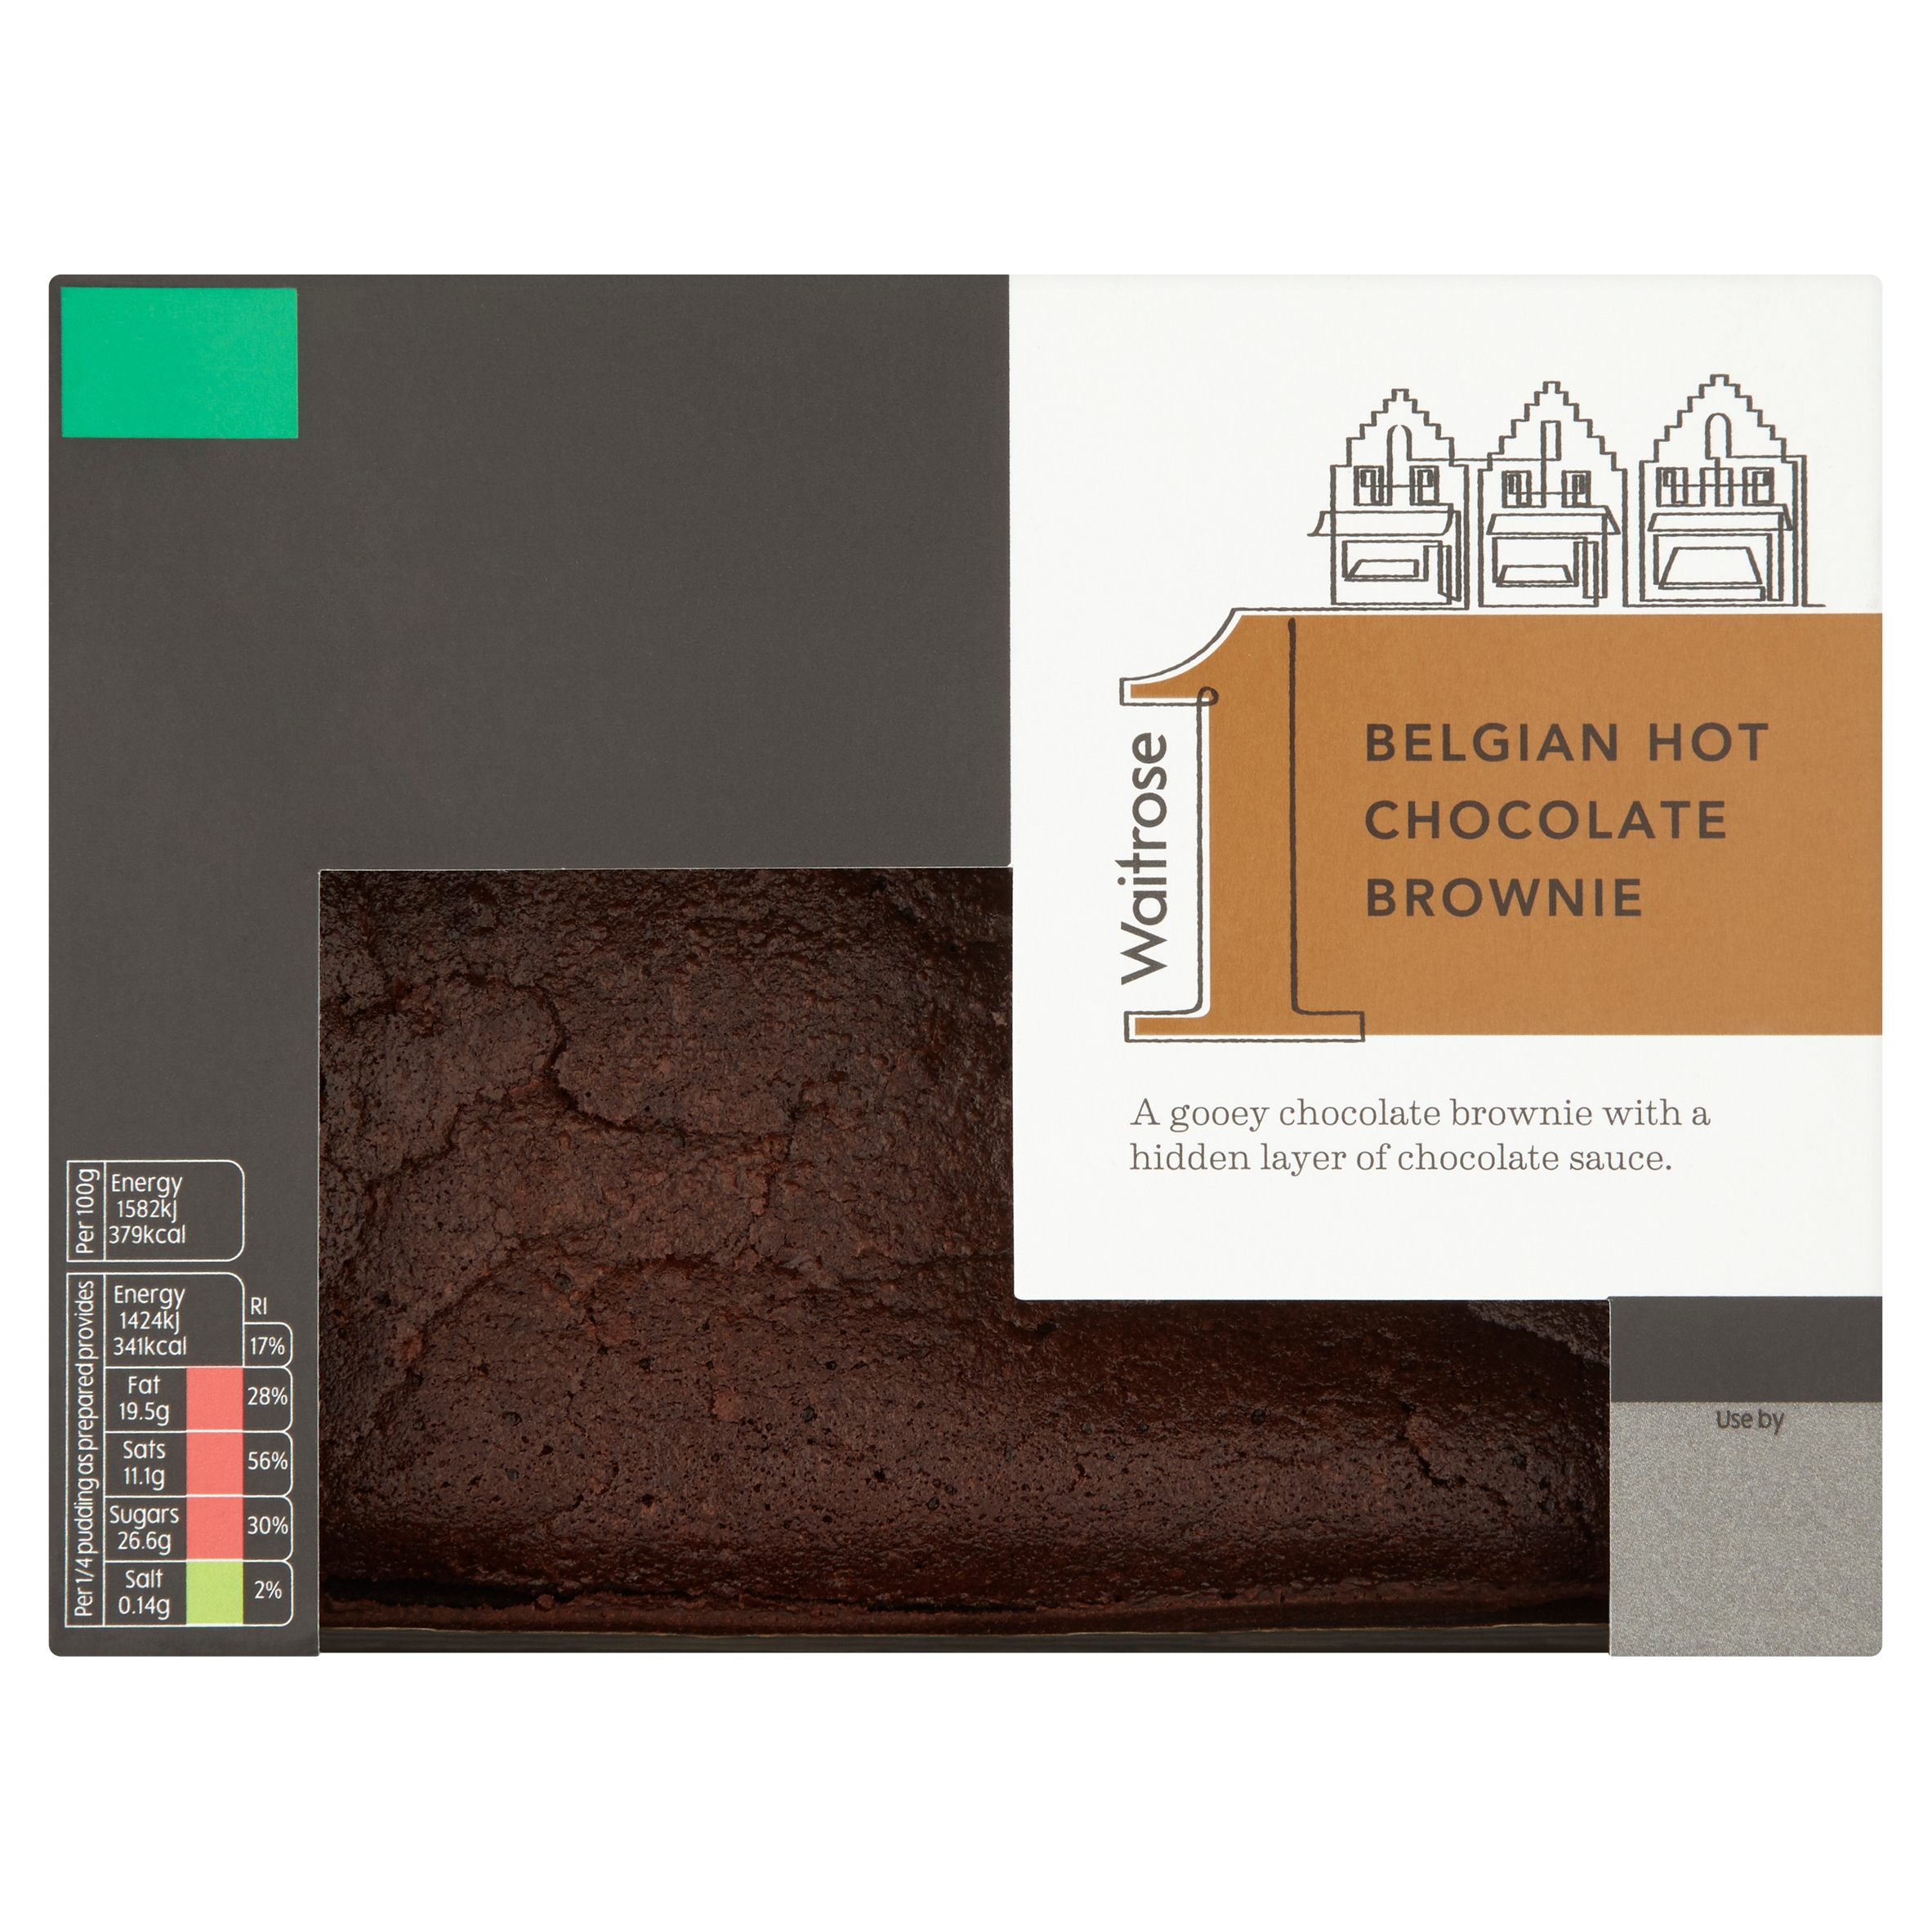 Waitrose 1 Belgian Hot Chocolate Brownie.jpg